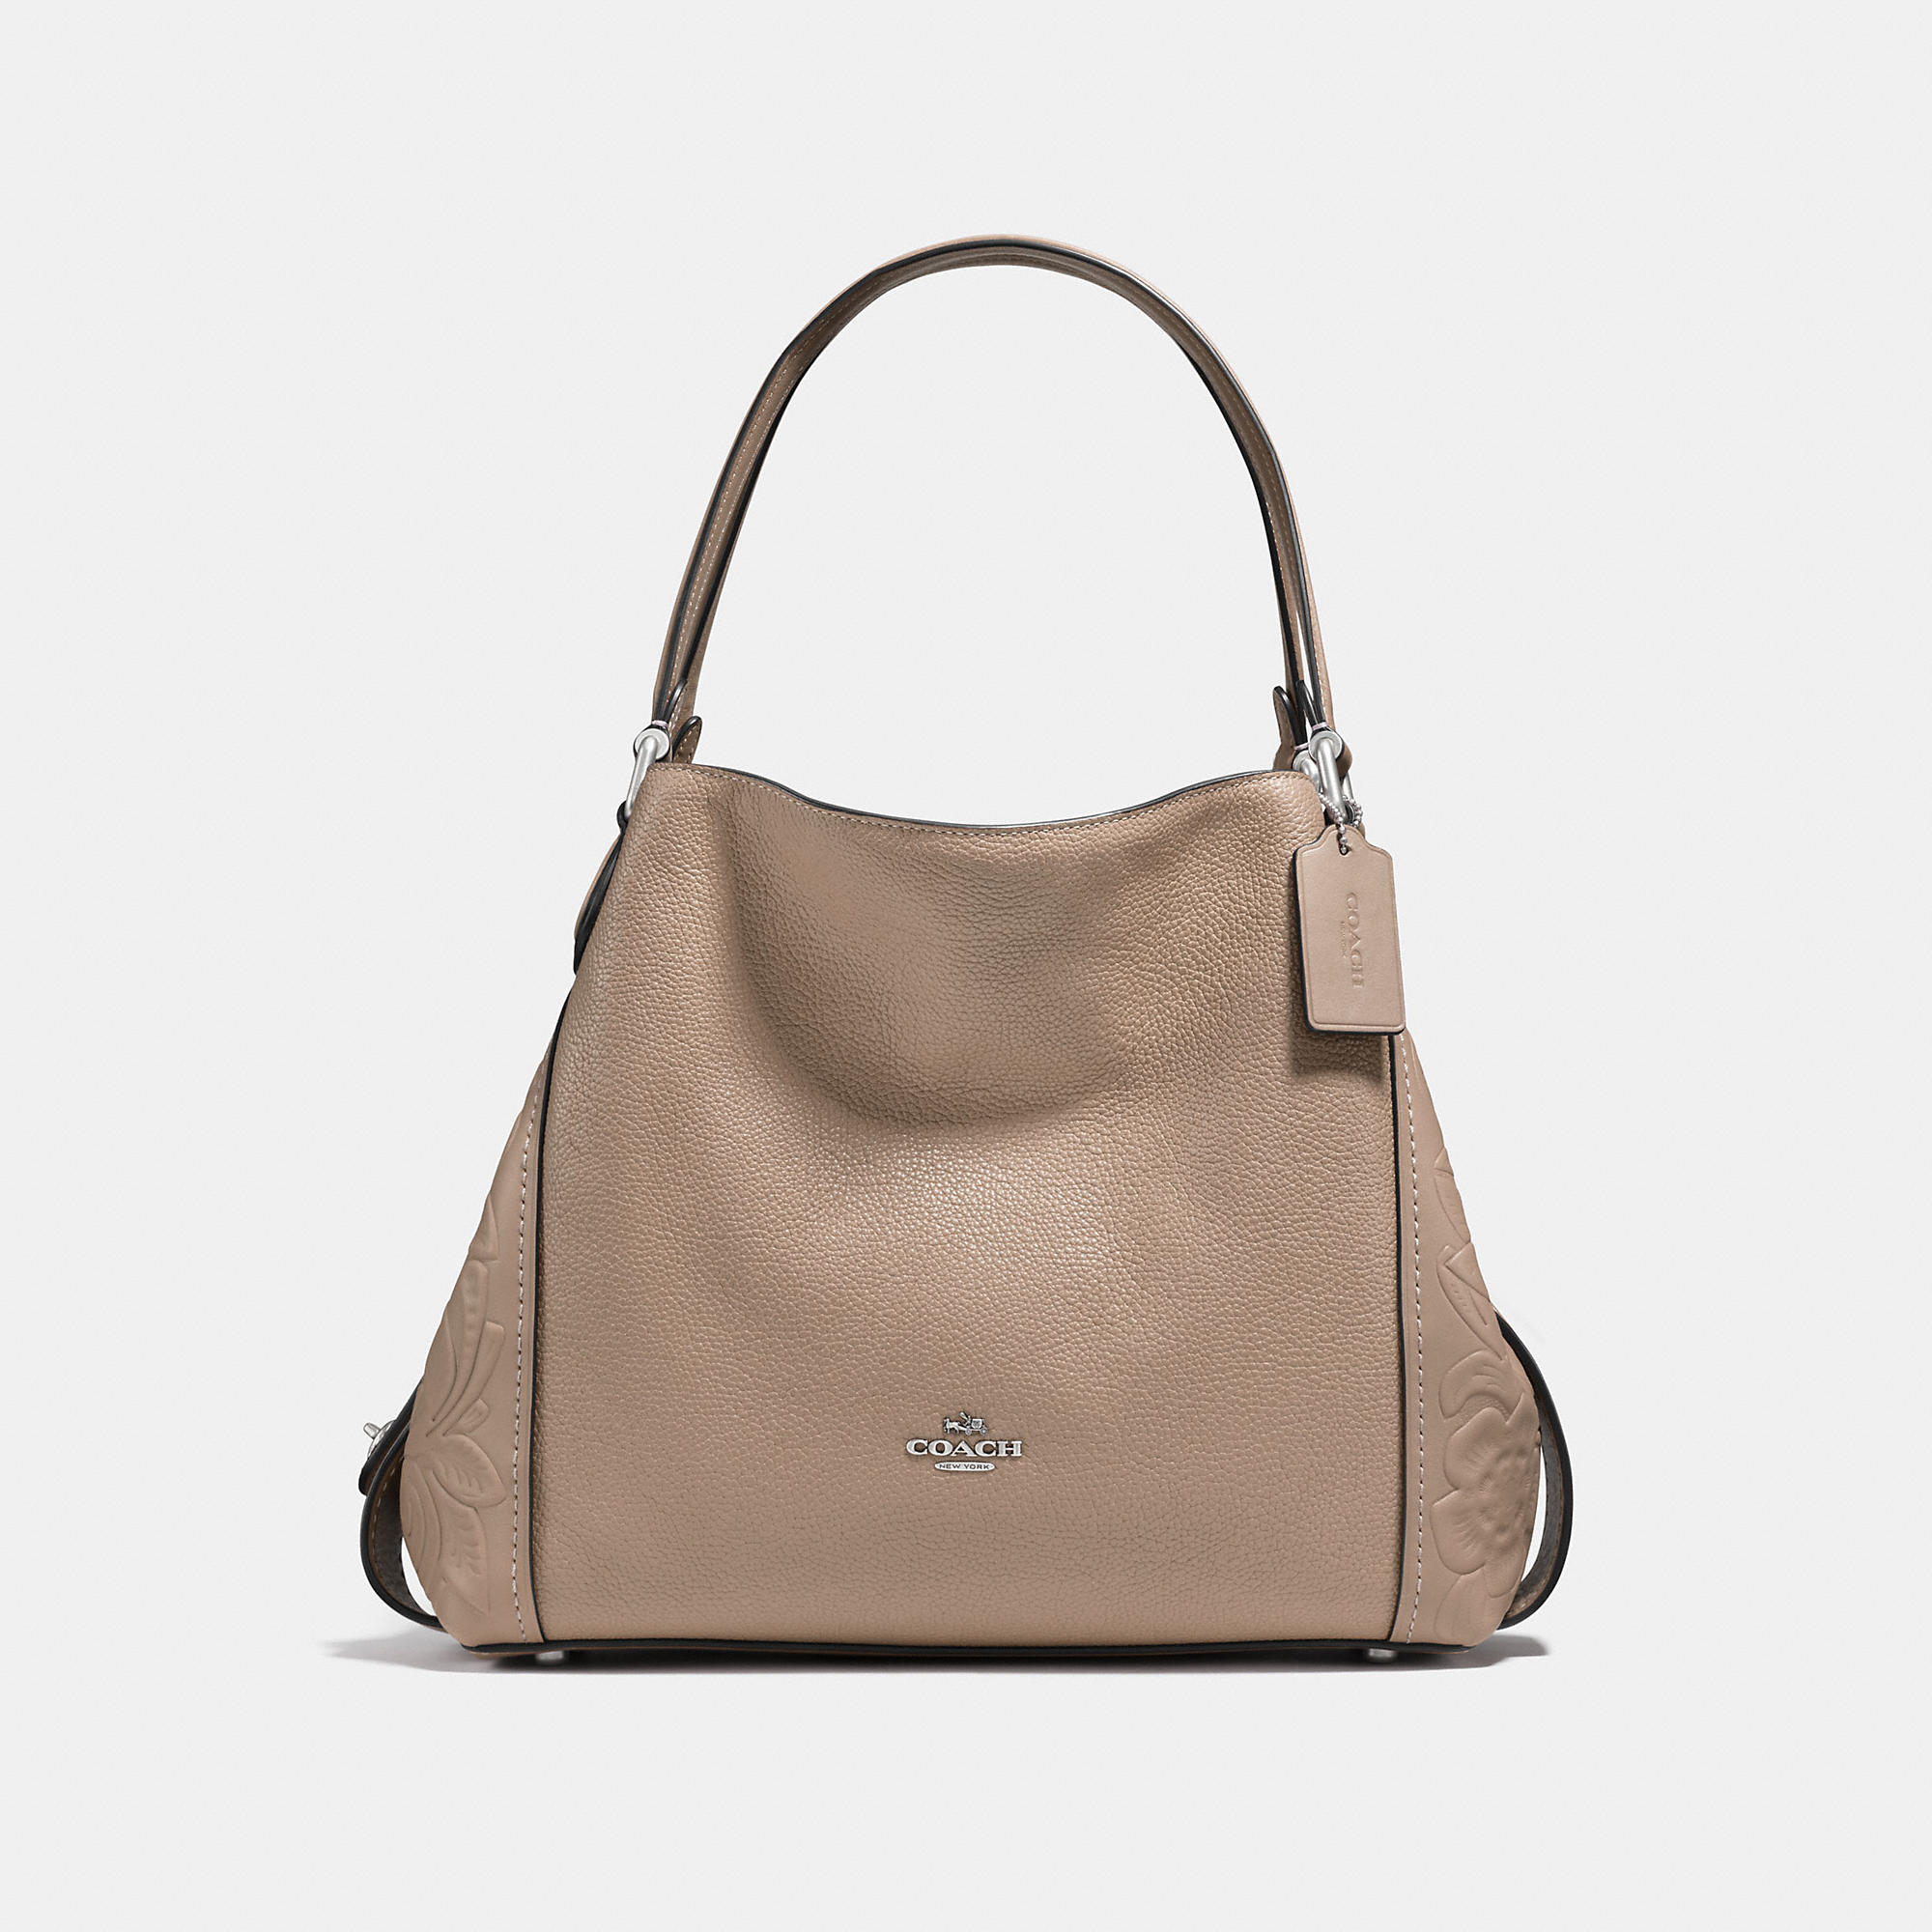 Coach Edie Shoulder Bag 31 In Glovetanned Leather With Tea Rose Tooling